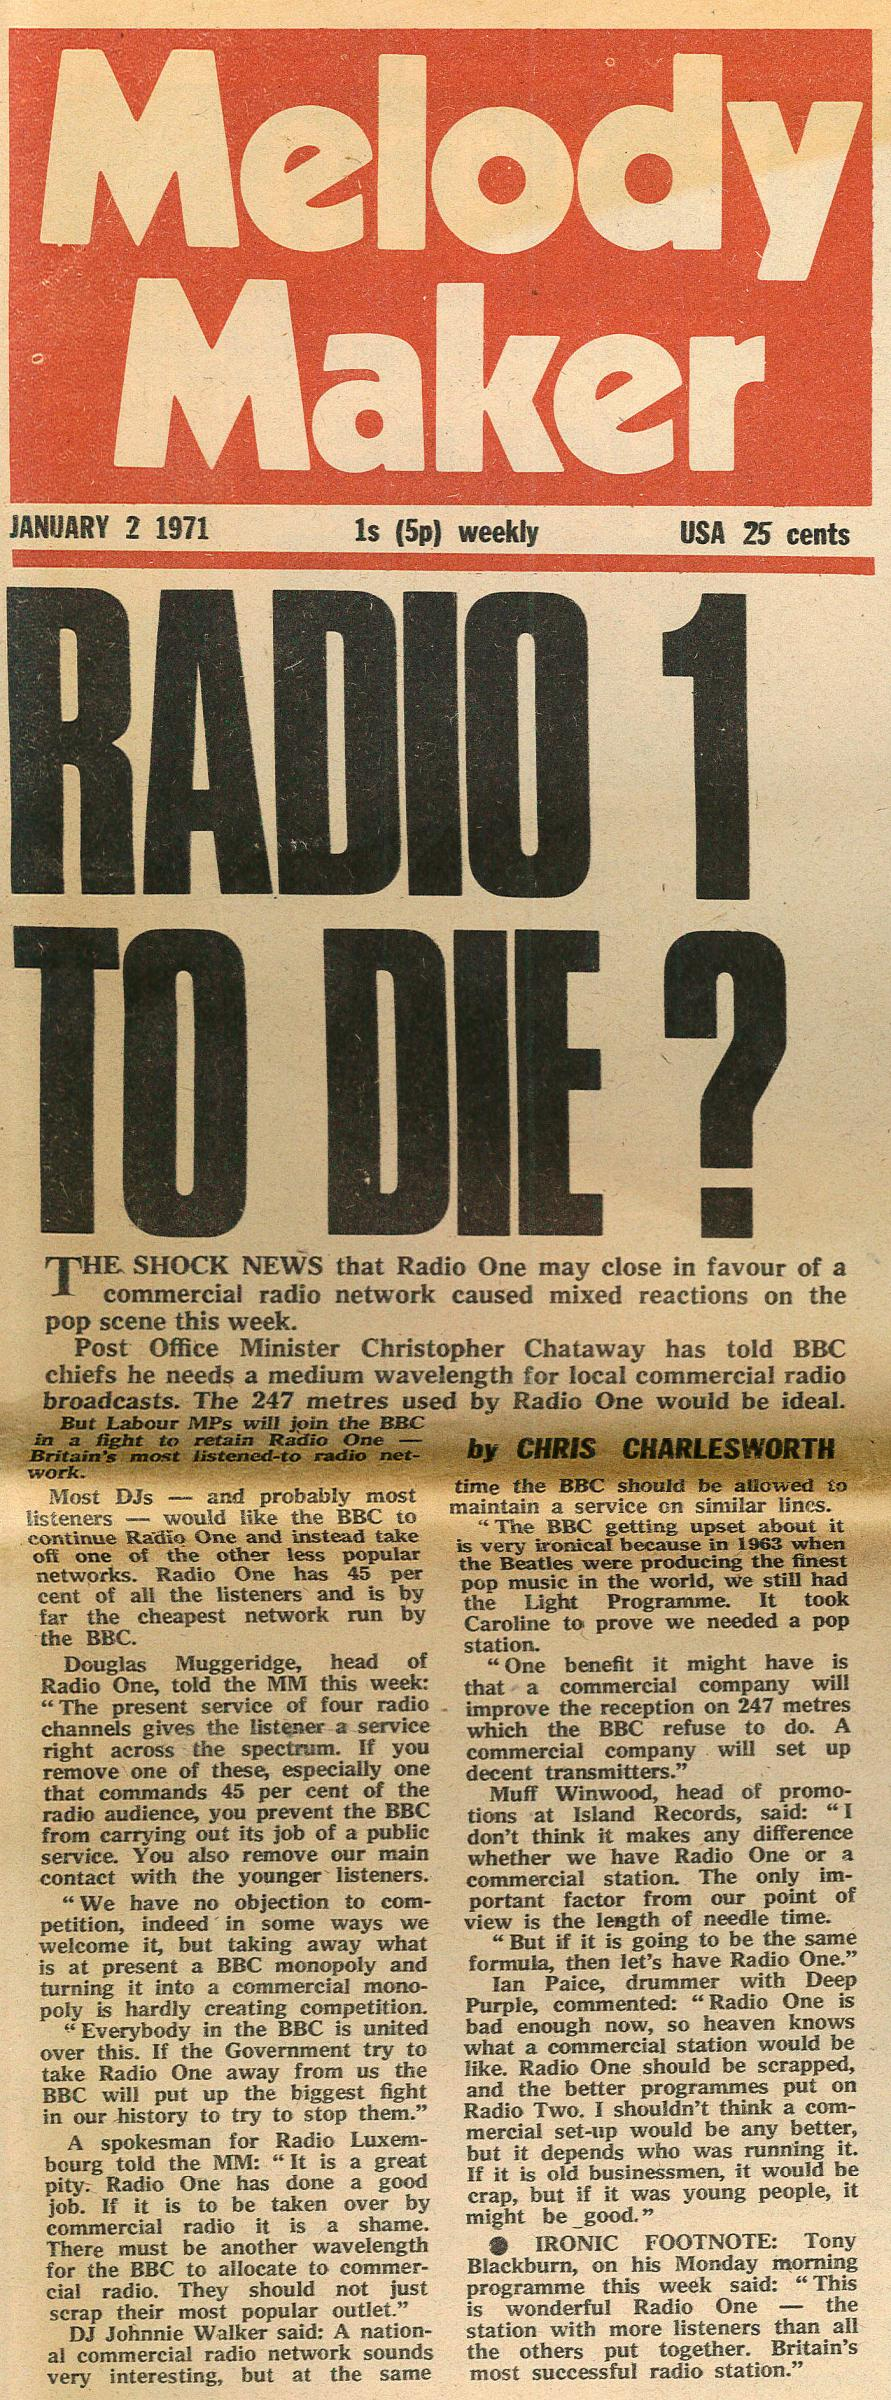 19710102_Radio 1 to die MM.jpg